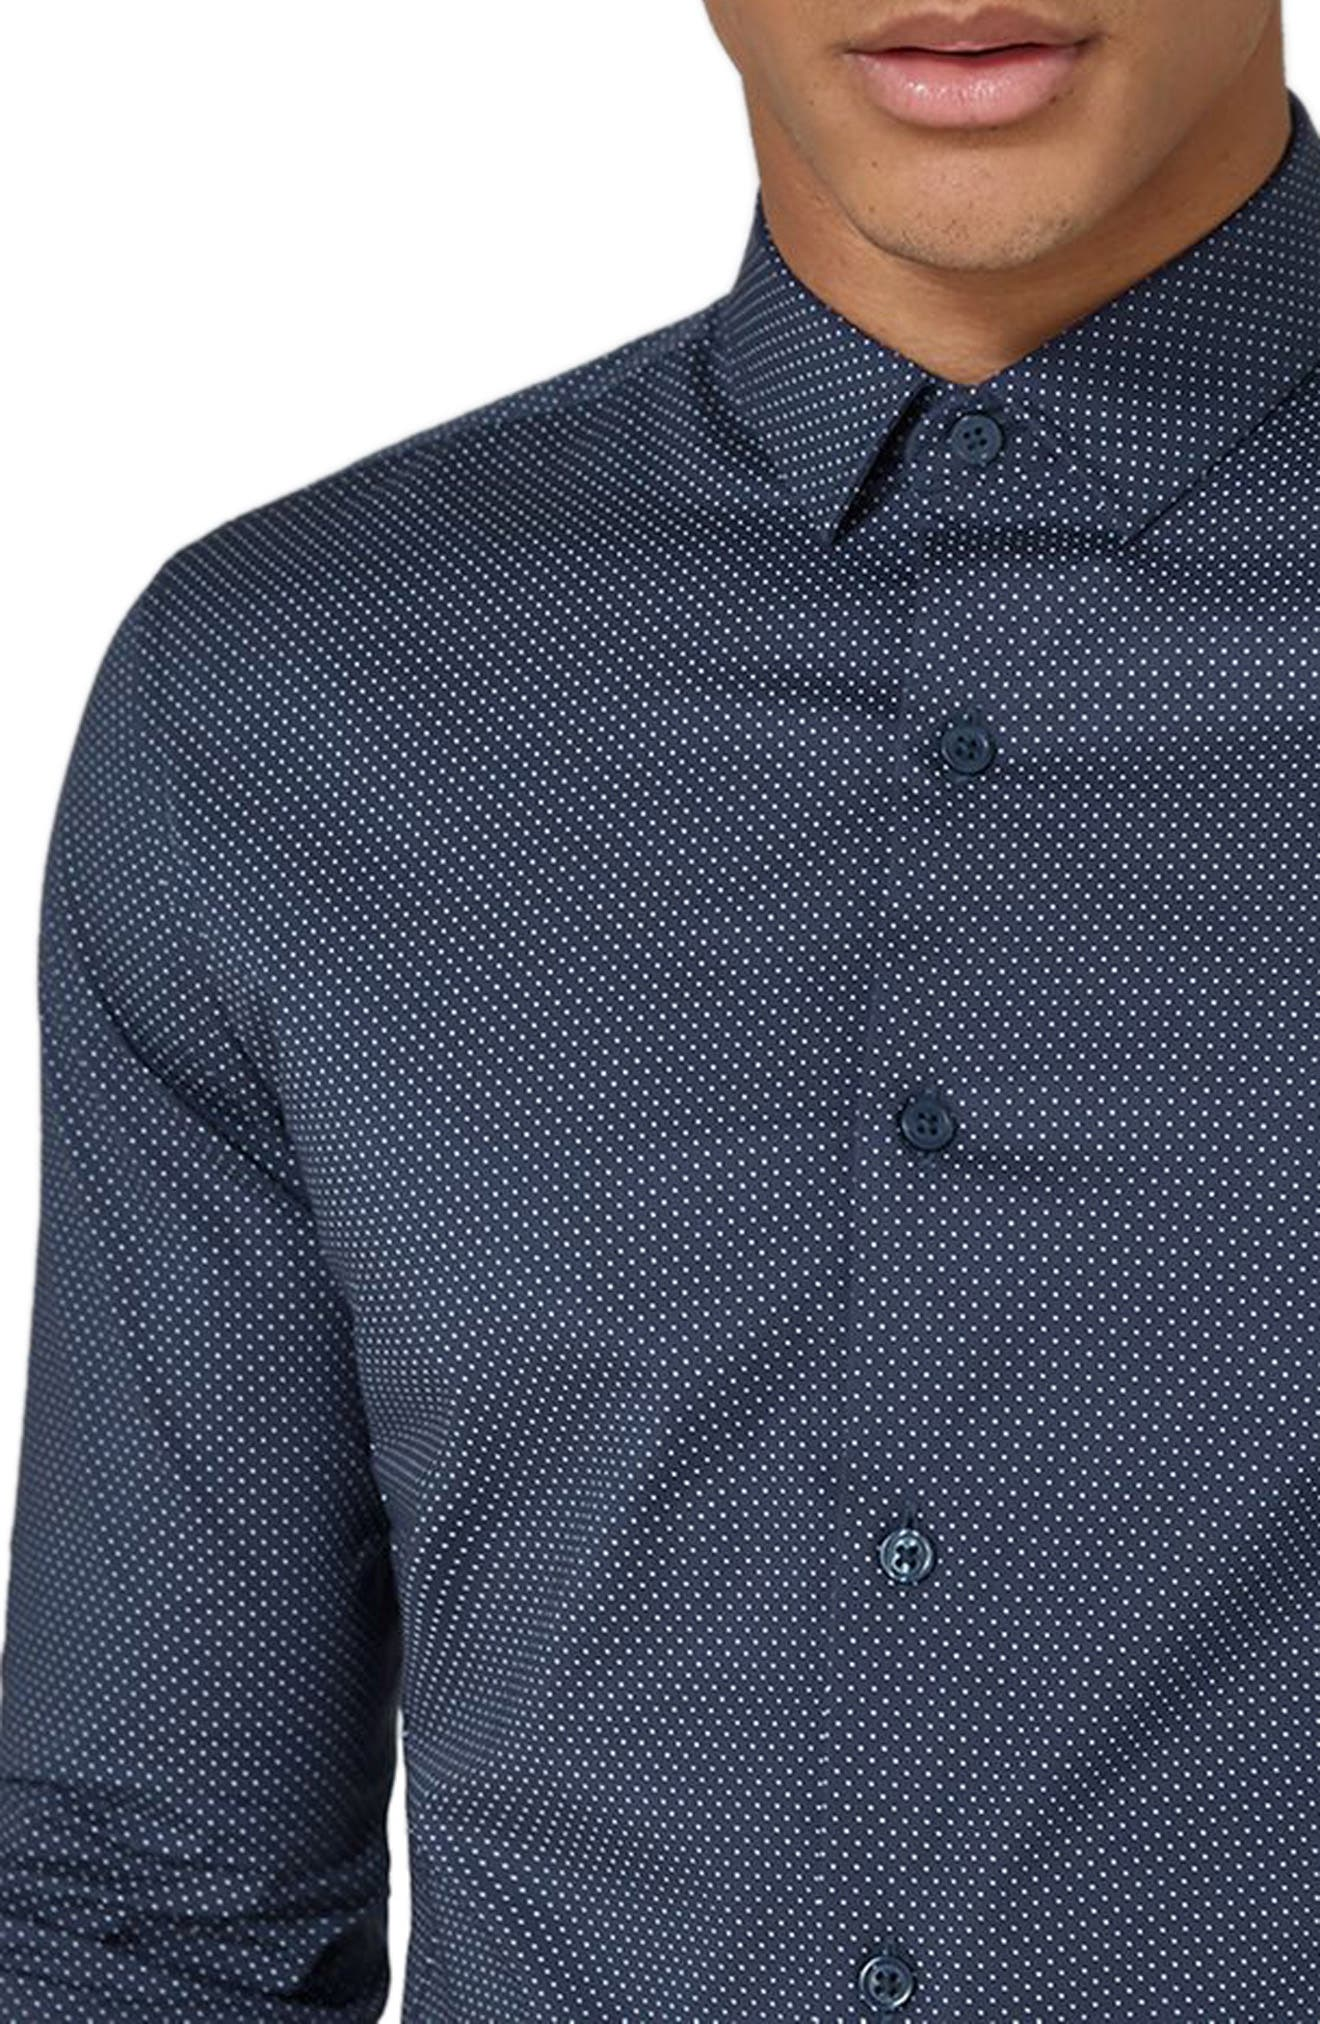 Polka Dot Stretch Smart Shirt,                             Alternate thumbnail 3, color,                             410